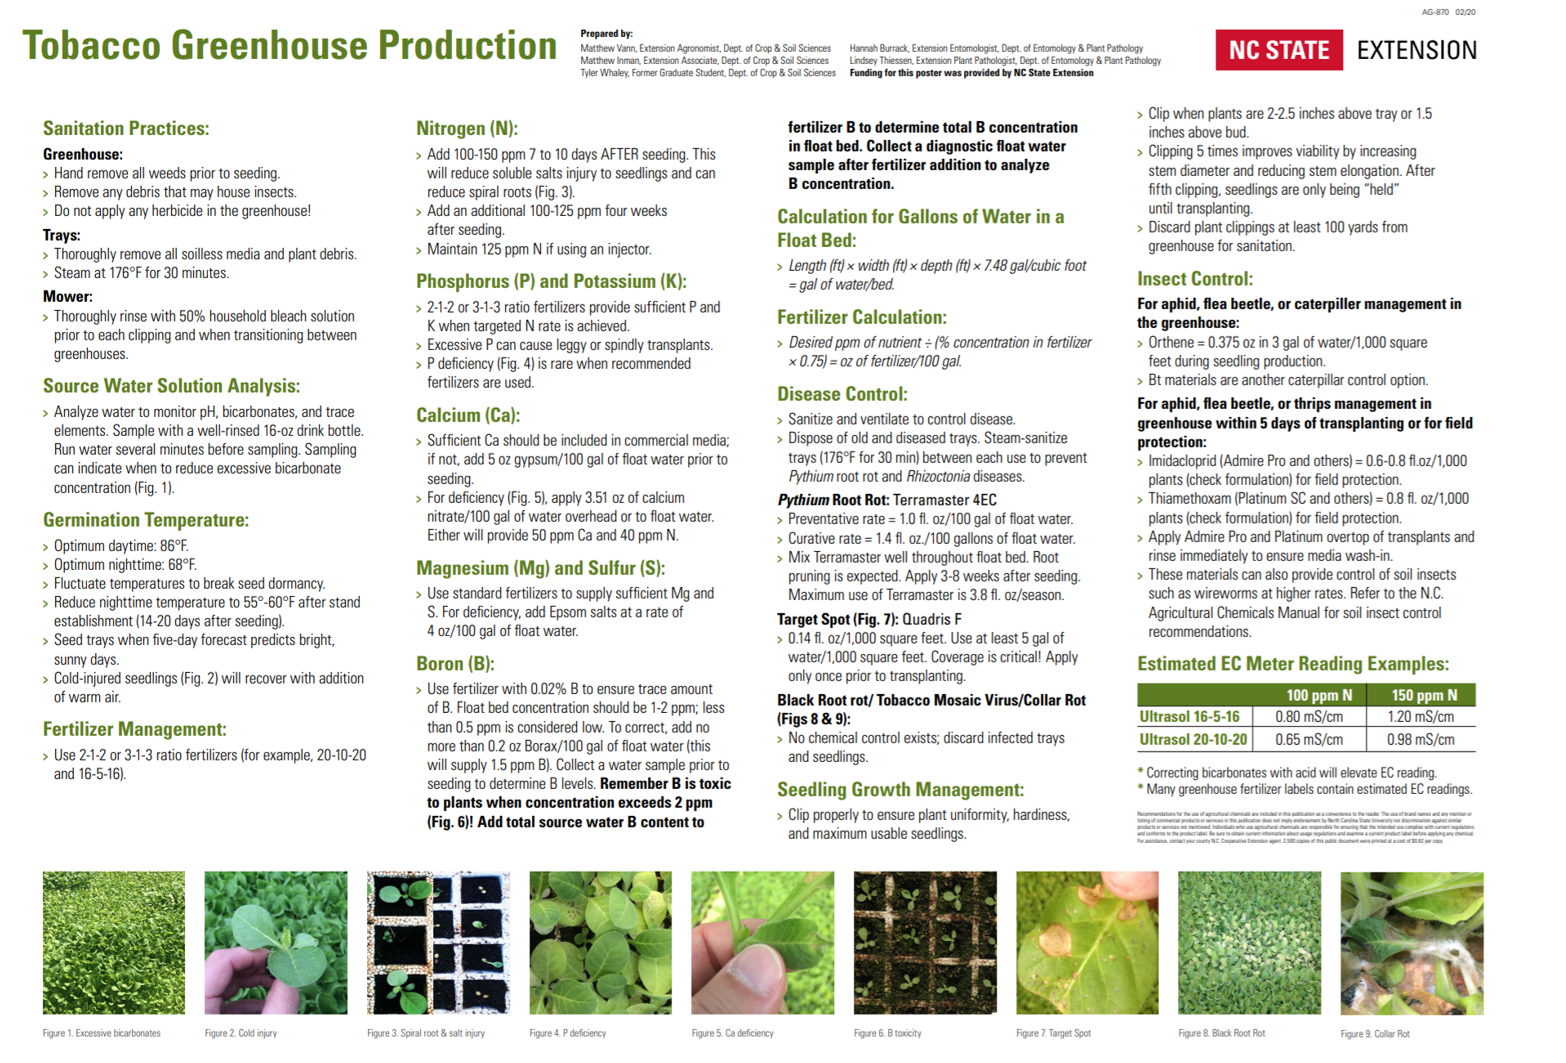 Tobacco Greenhouse Production poster image